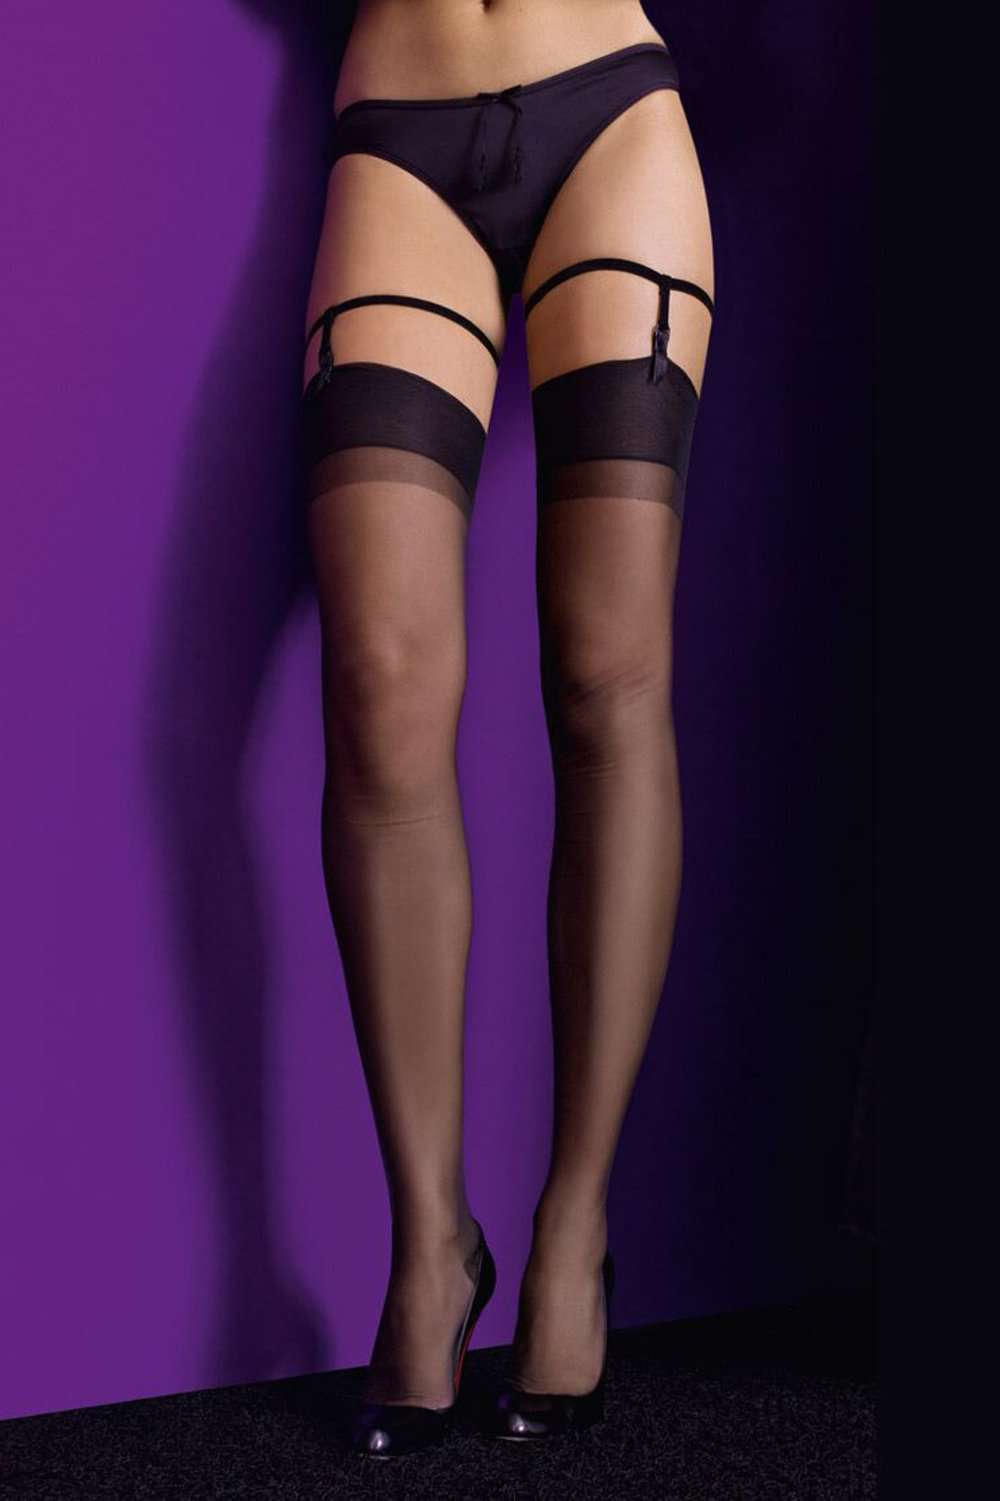 Maison Close Nylon Stockings - Naughty Knickers